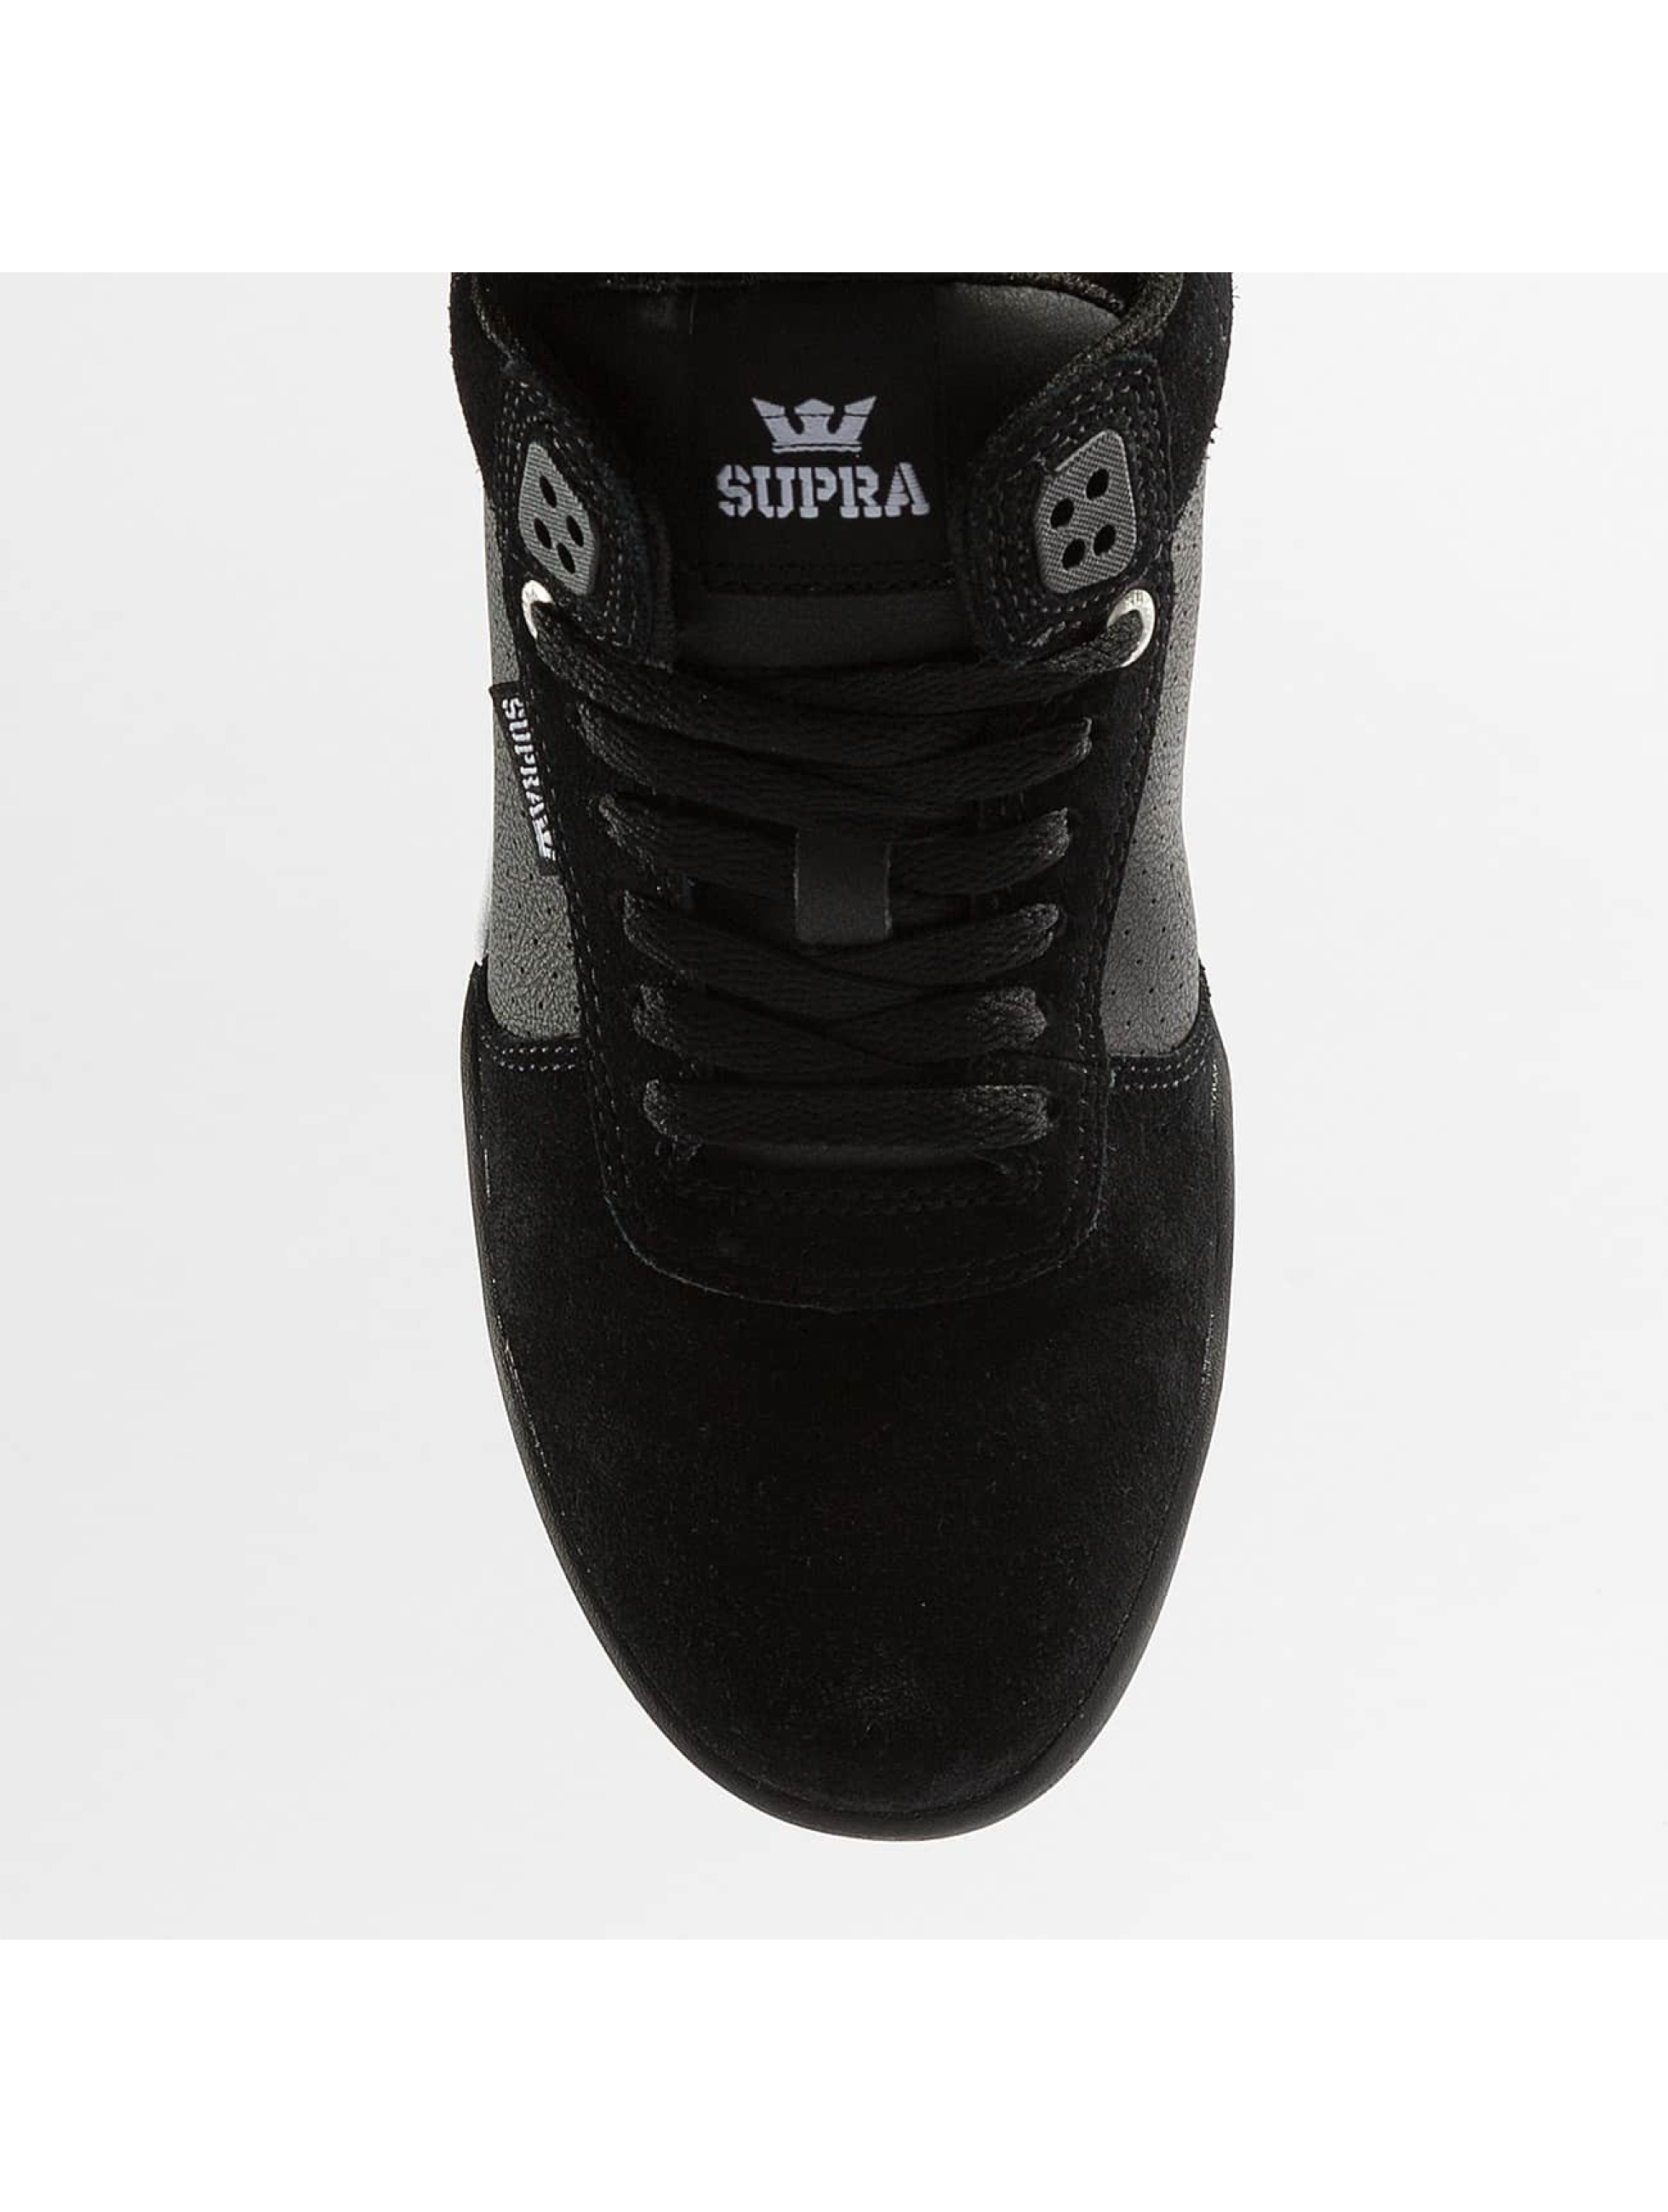 Supra Sneakers Ellington black